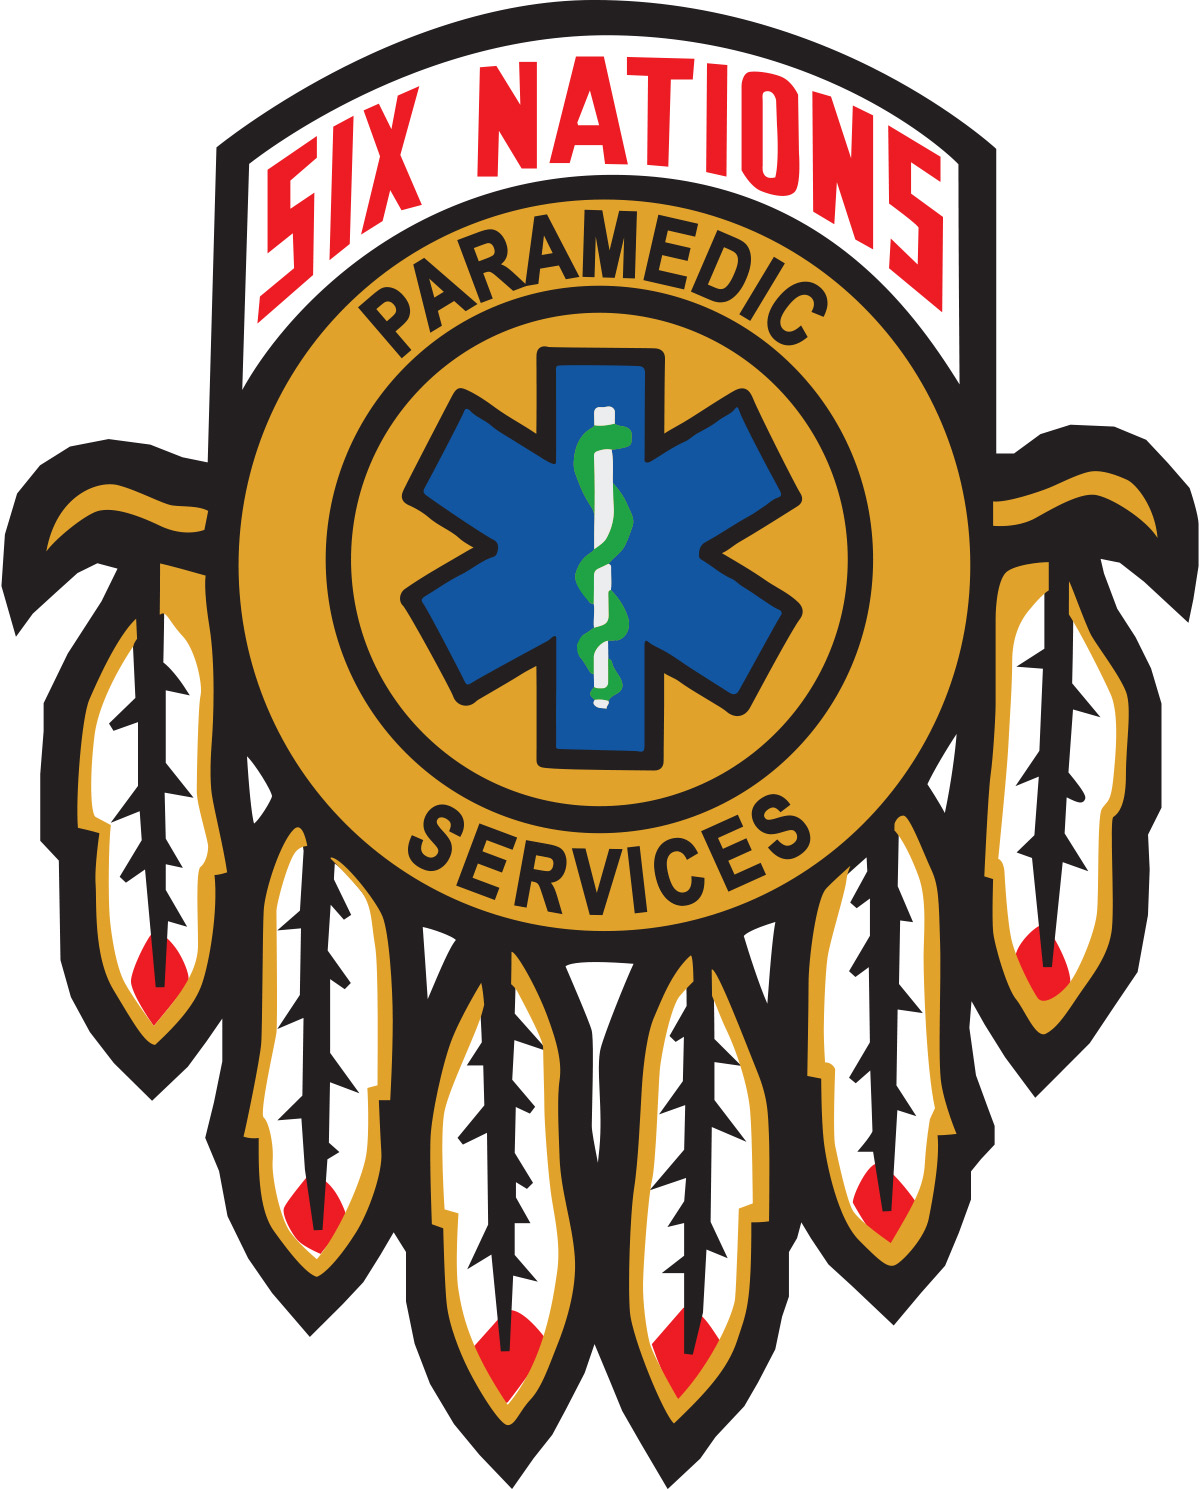 Six Nations Paramedic Services